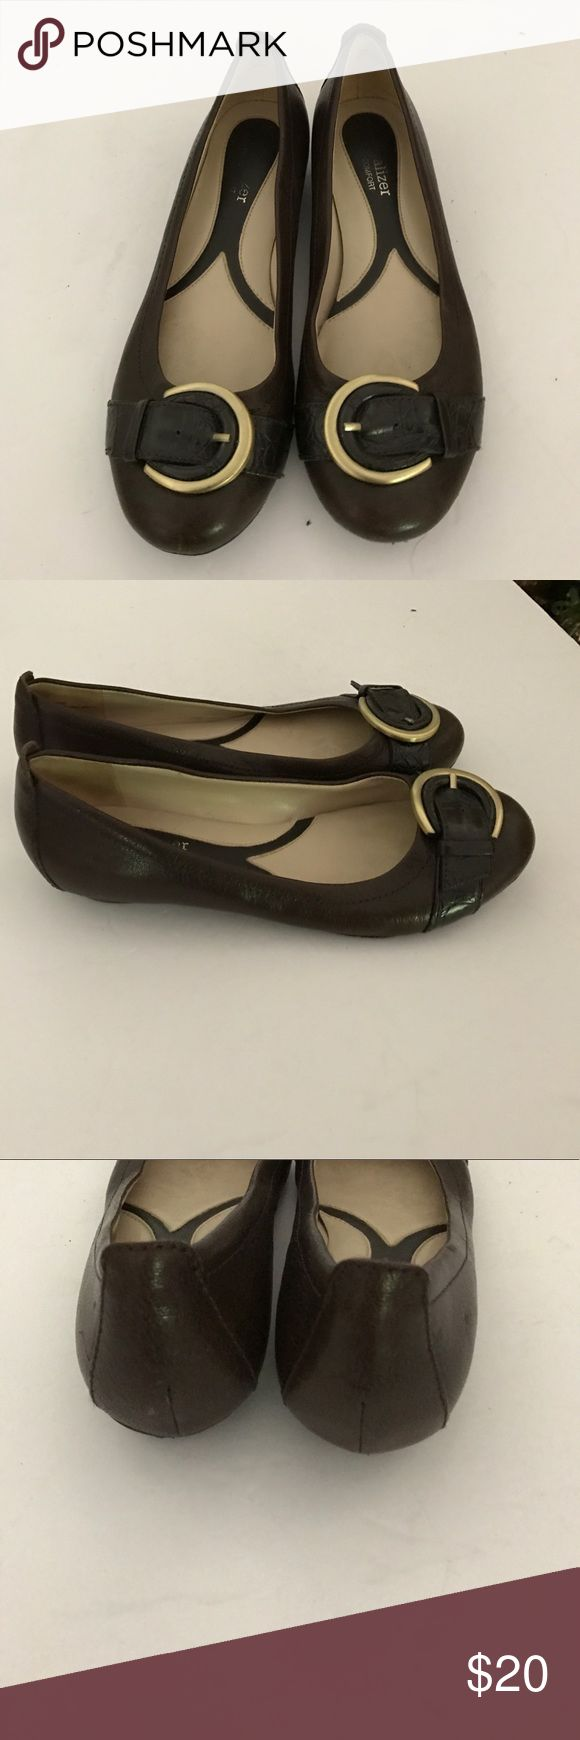 Naturalizer brown black leather loafer 5.5 slip on Super comfy and great versatility  casual  or work brown and black tiny heel gold faux buckle design Naturalizer Shoes Flats & Loafers